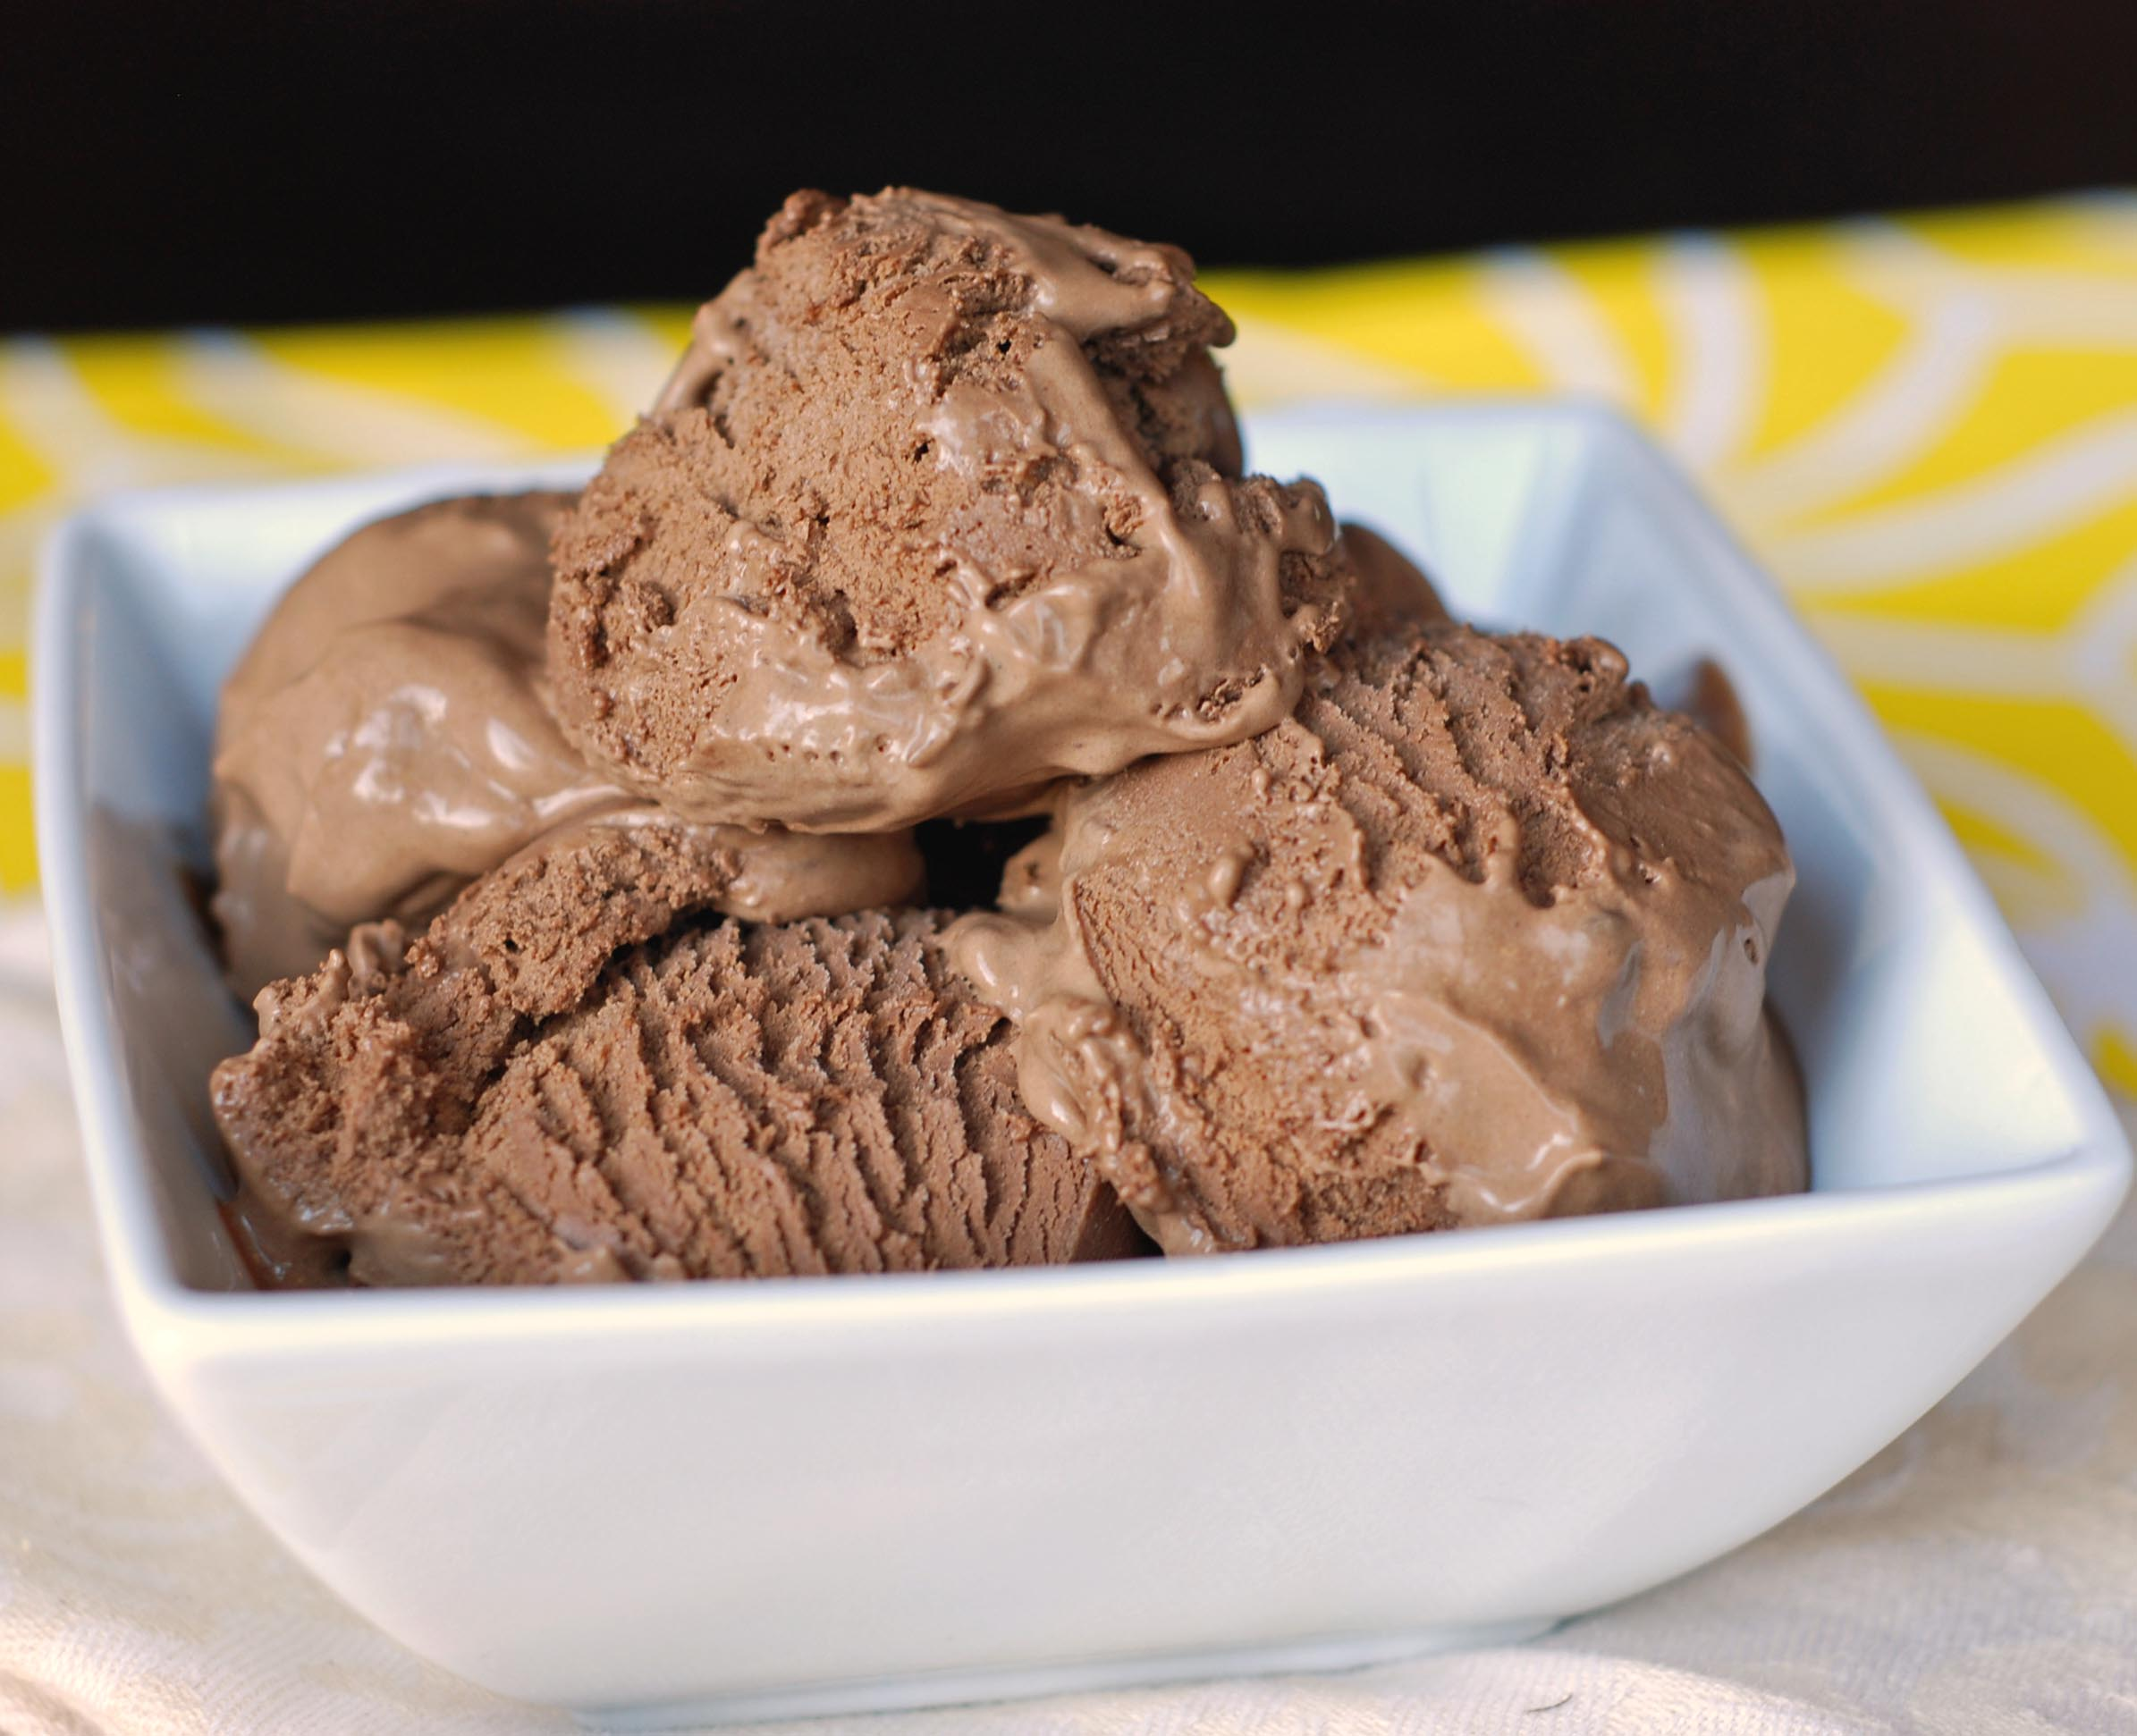 The Best Chocolate Ice-Cream! | Blissfully Delicious